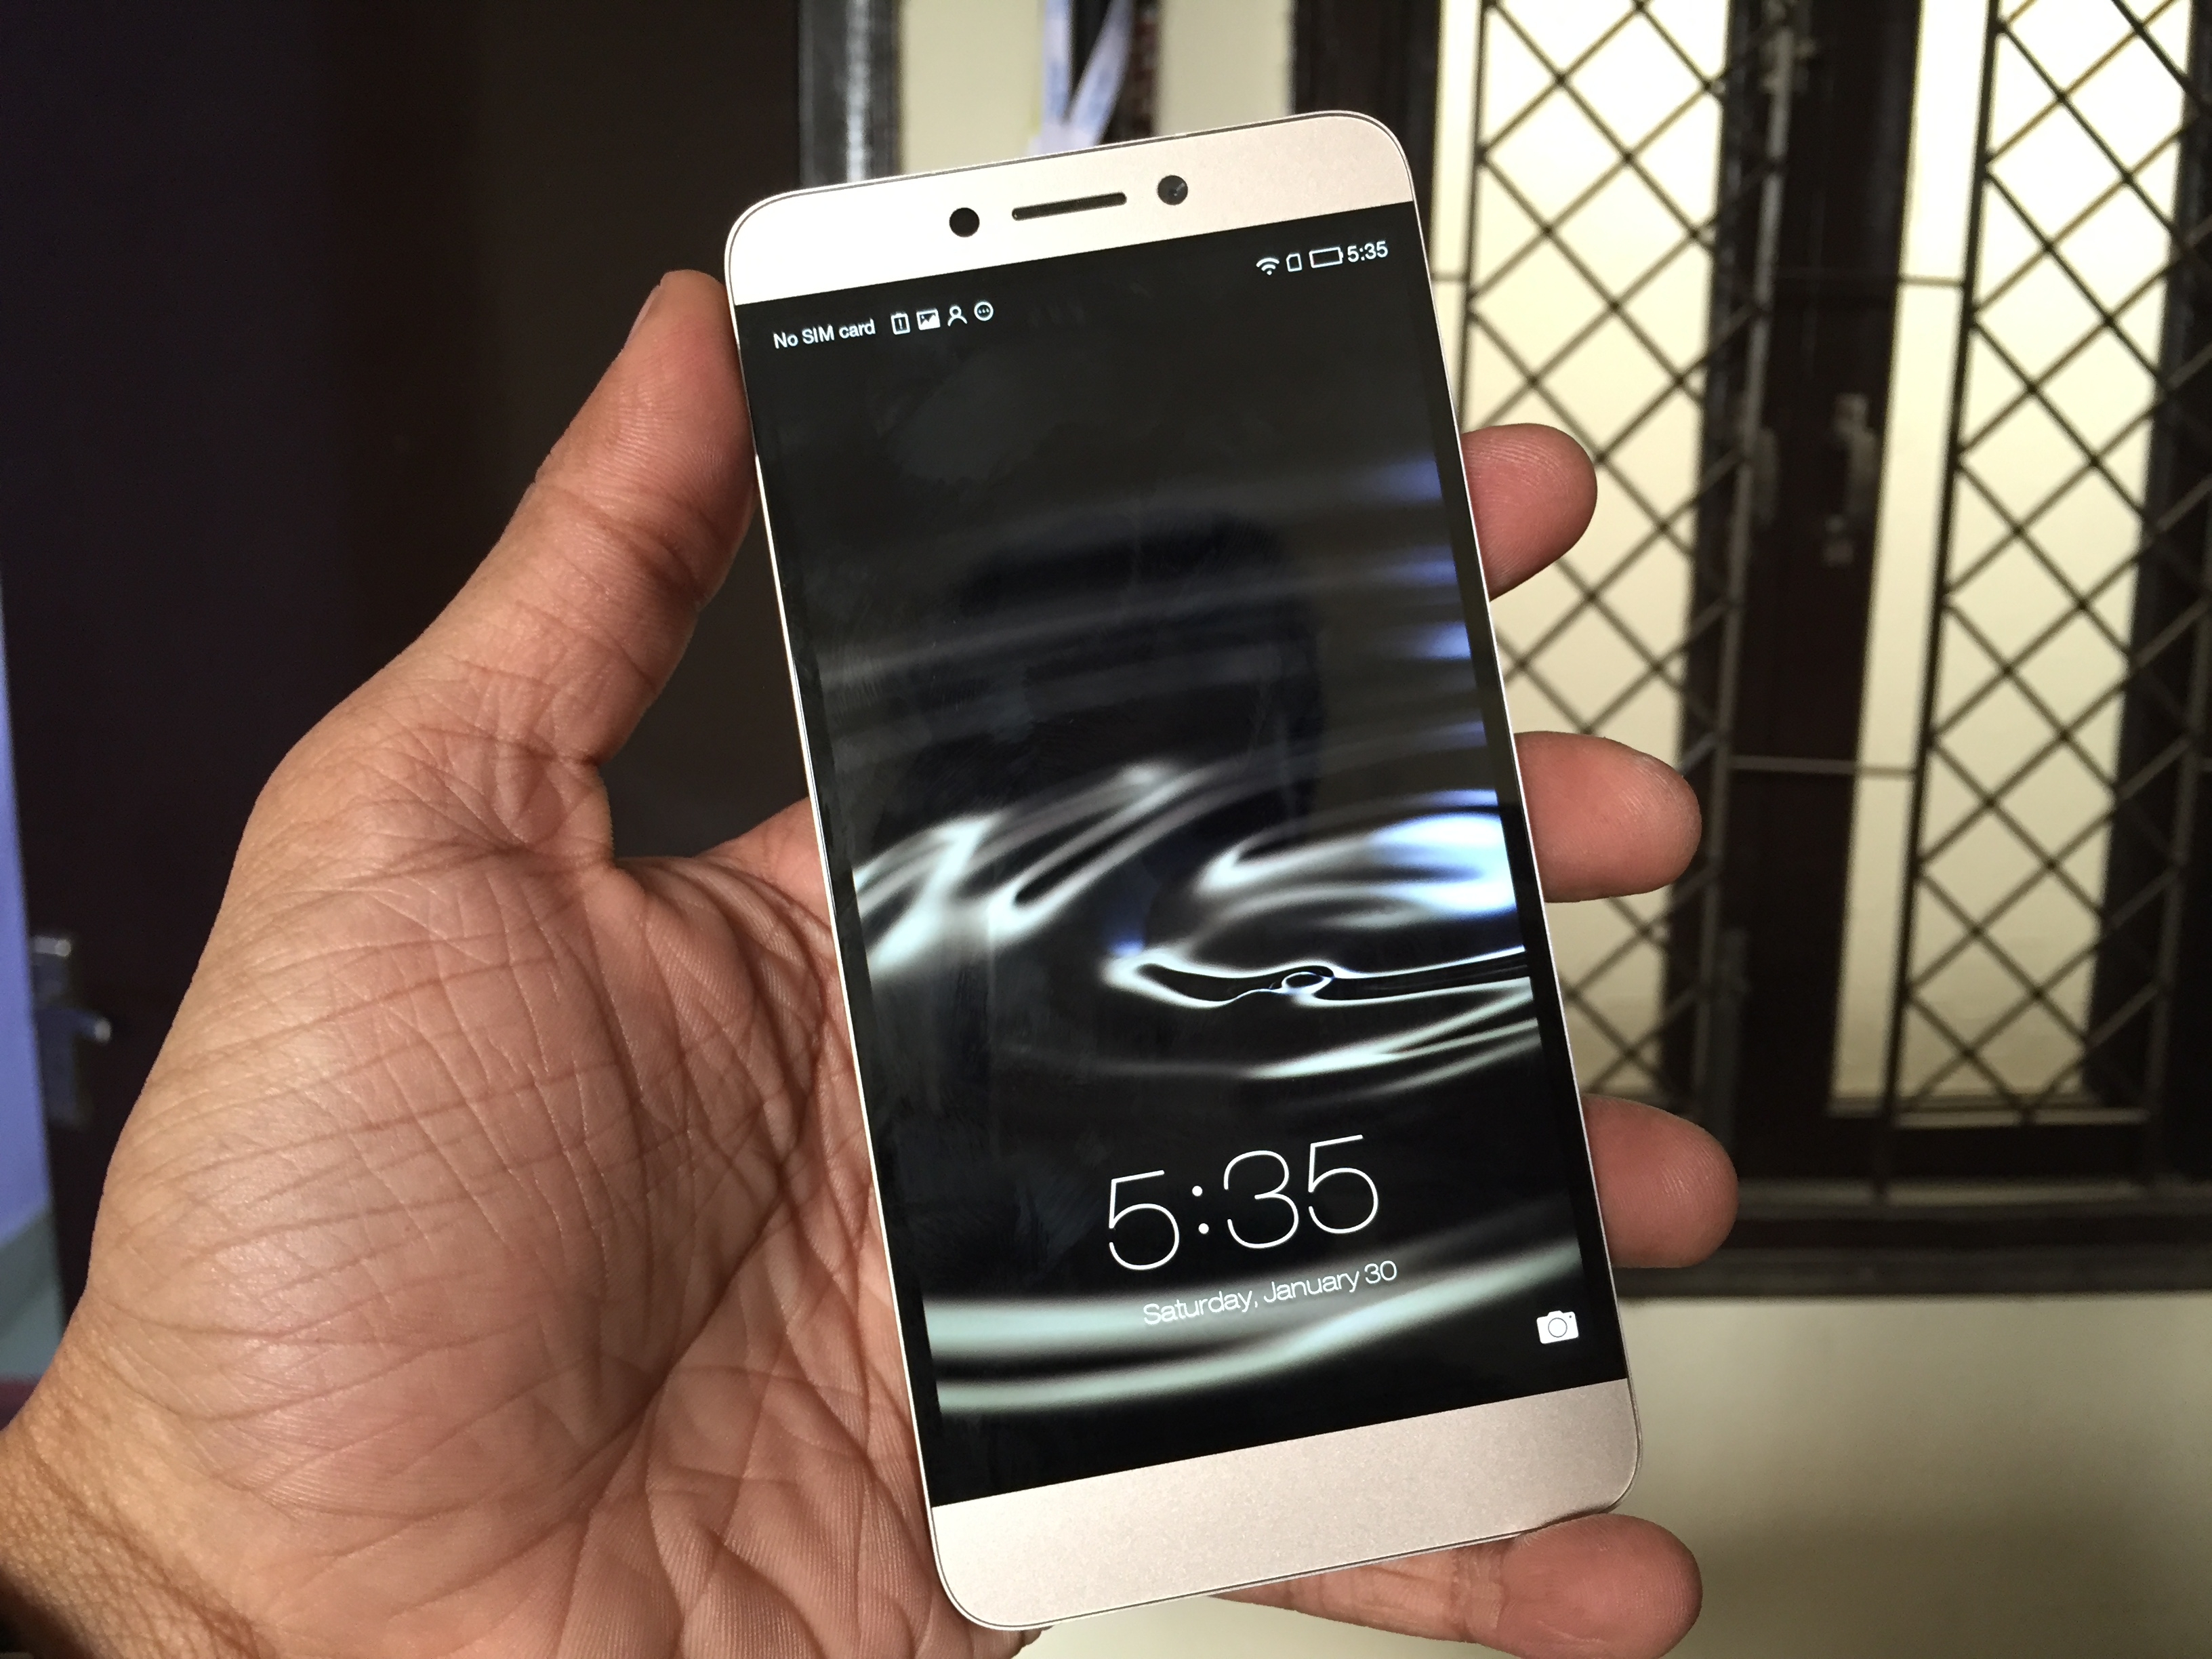 LeEco Le 1s Tips & Tricks, Features, Hidden Options - Gadgets To Use